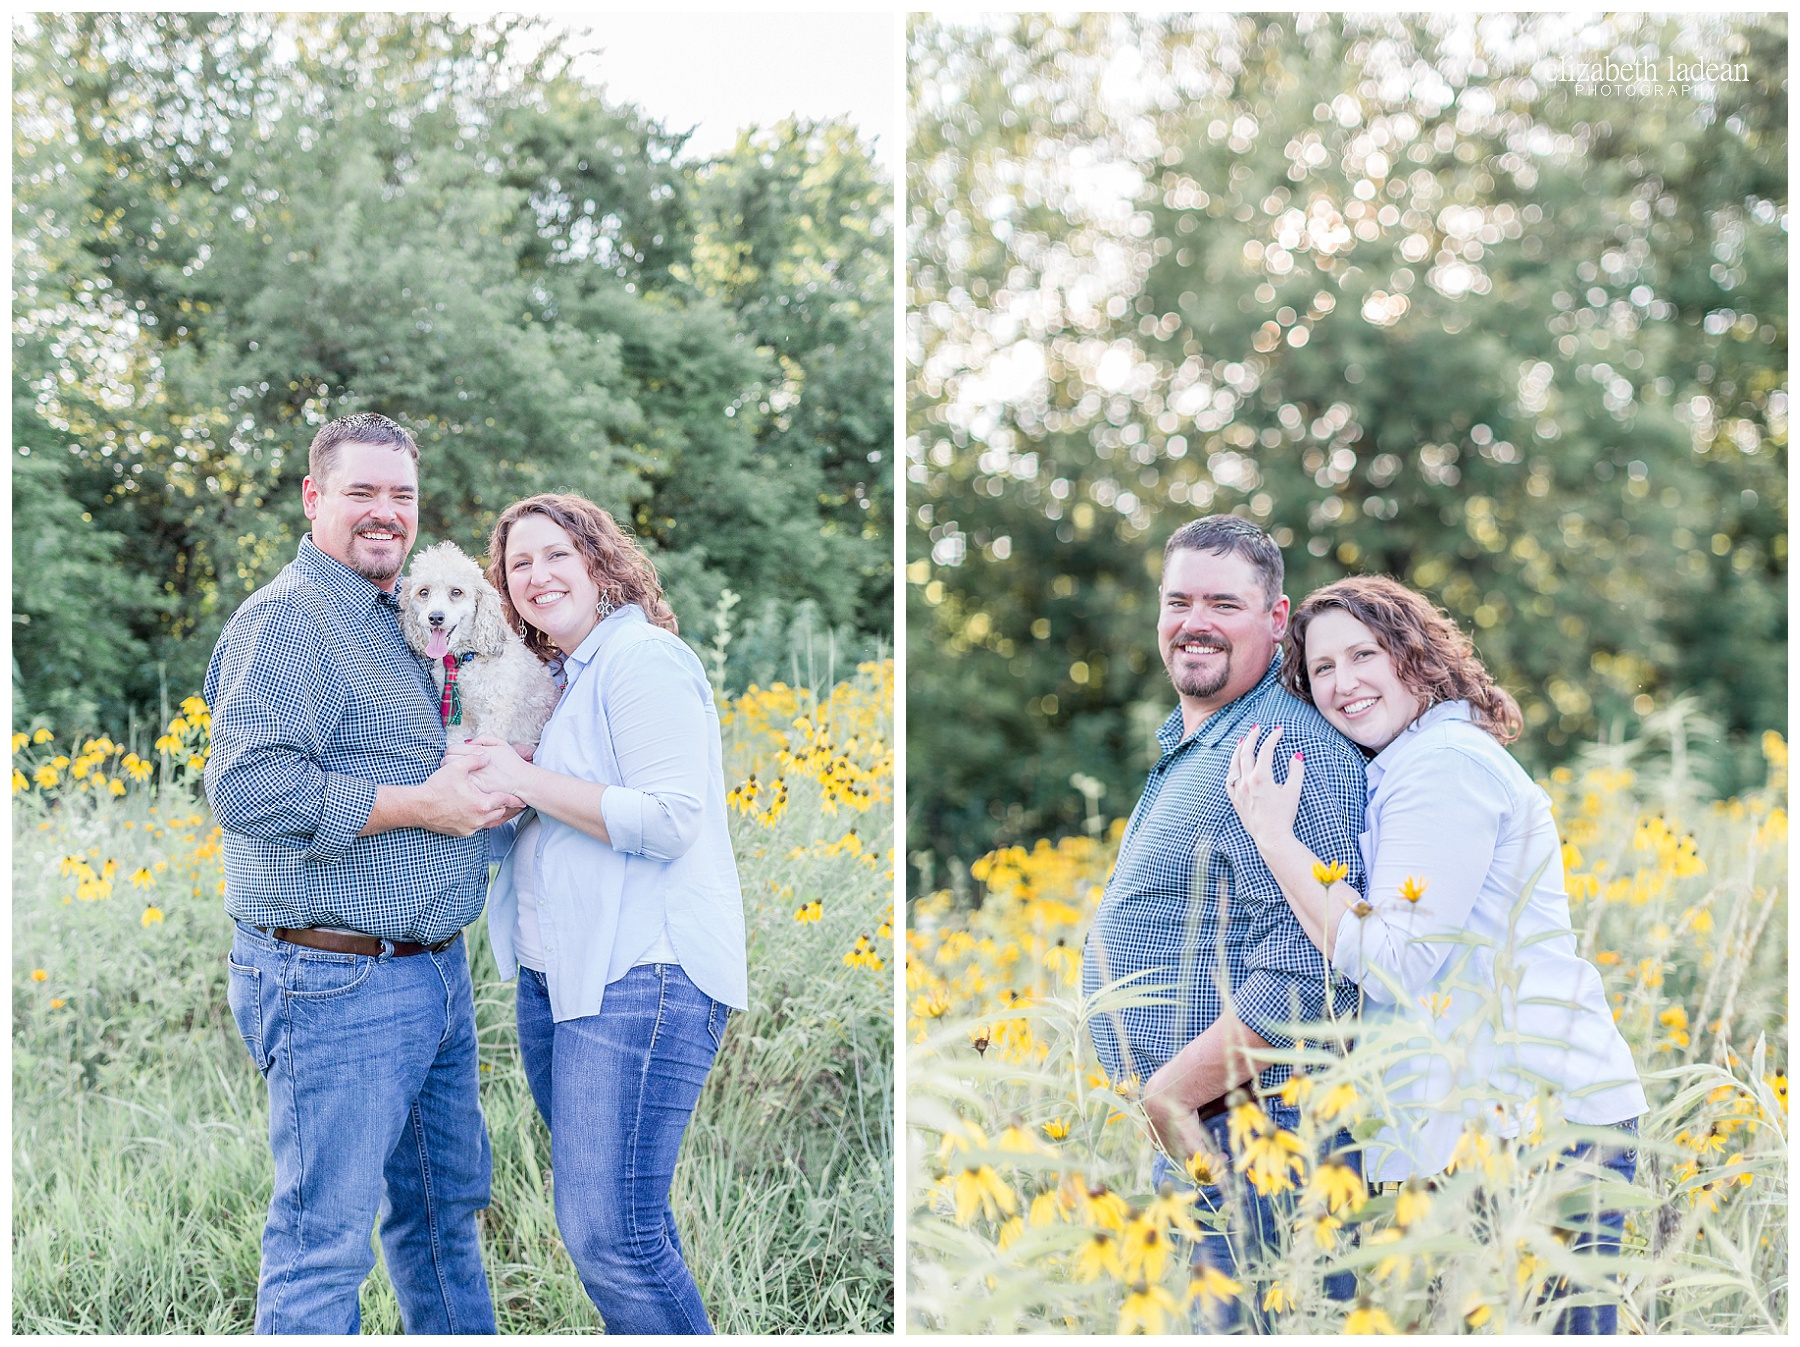 Kansas-City-Engagement-Photography-Shawnee-Mission-H+JJ2017-Elizabeth-Ladean-Photography-photo_1923.jpg